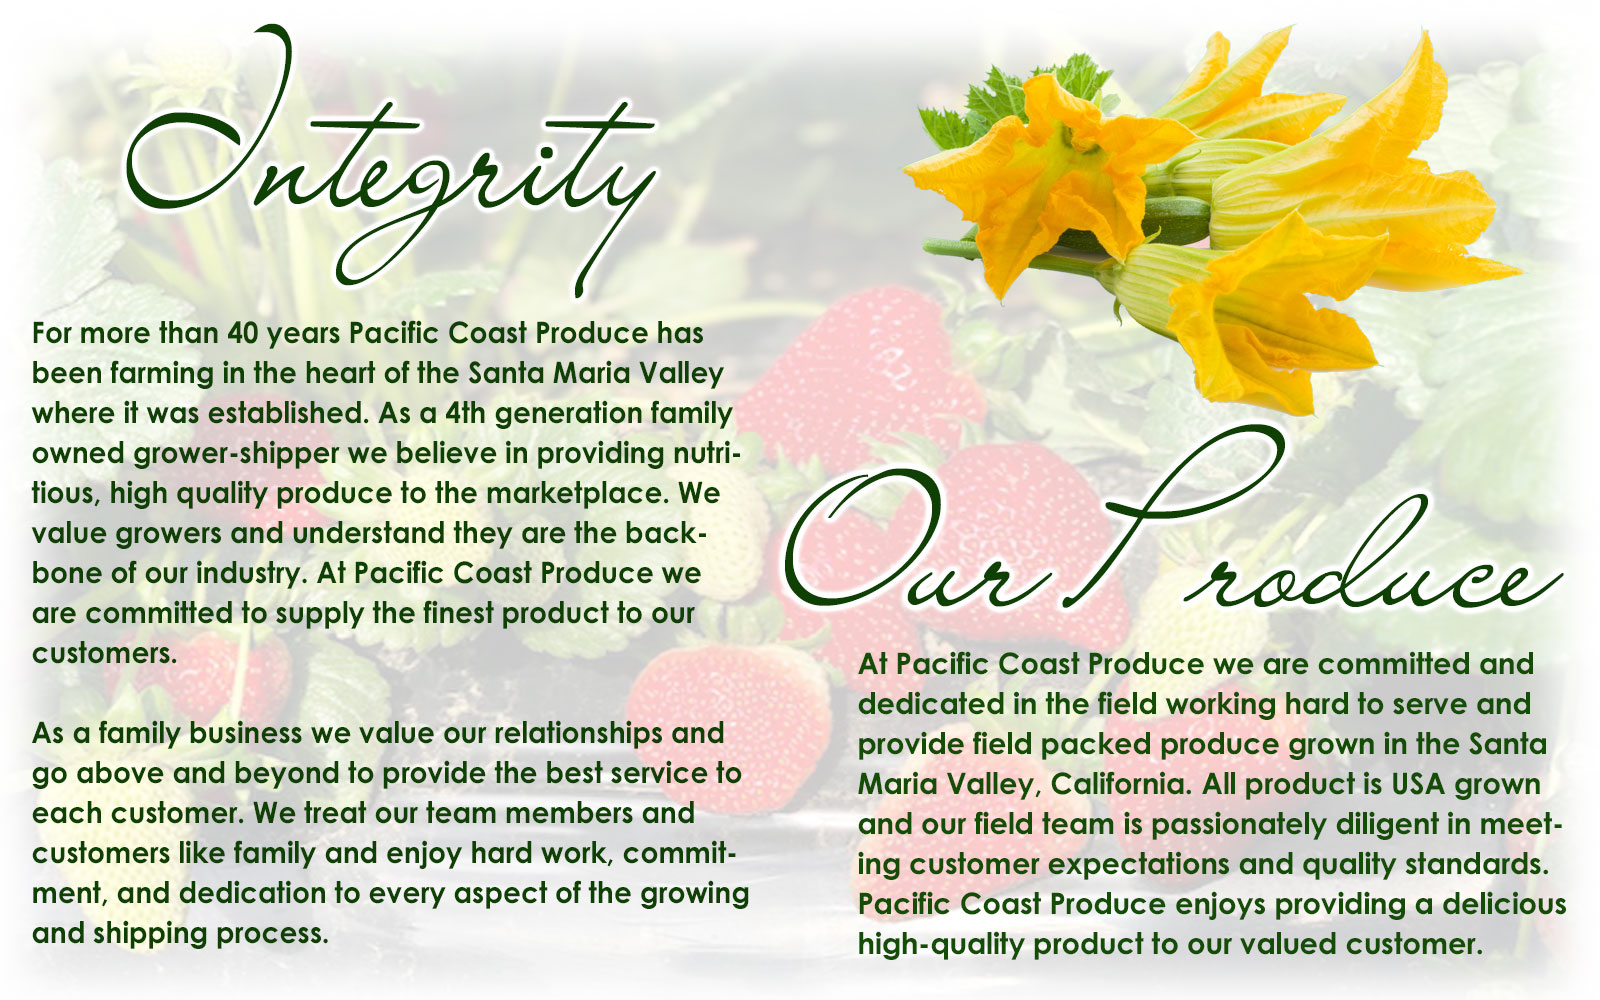 For more than 40 years Pacific Coast Produce has been farming in the heart of the Santa Maria Valley where it was established. As a 4th generation family owned grower-shipper we believe in providing nutritious, high quality produce to the marketplace. We value growers and understand they are the backbone of our industry. At Pacific Coast Produce we are committed to supply the finest product to our customers. As a family business we value our relationships and go above and beyond to provide the best service to each customer. We treat our team members and customers like family and enjoy hard work, commitment, and dedication to every aspect of the growing and shipping process.